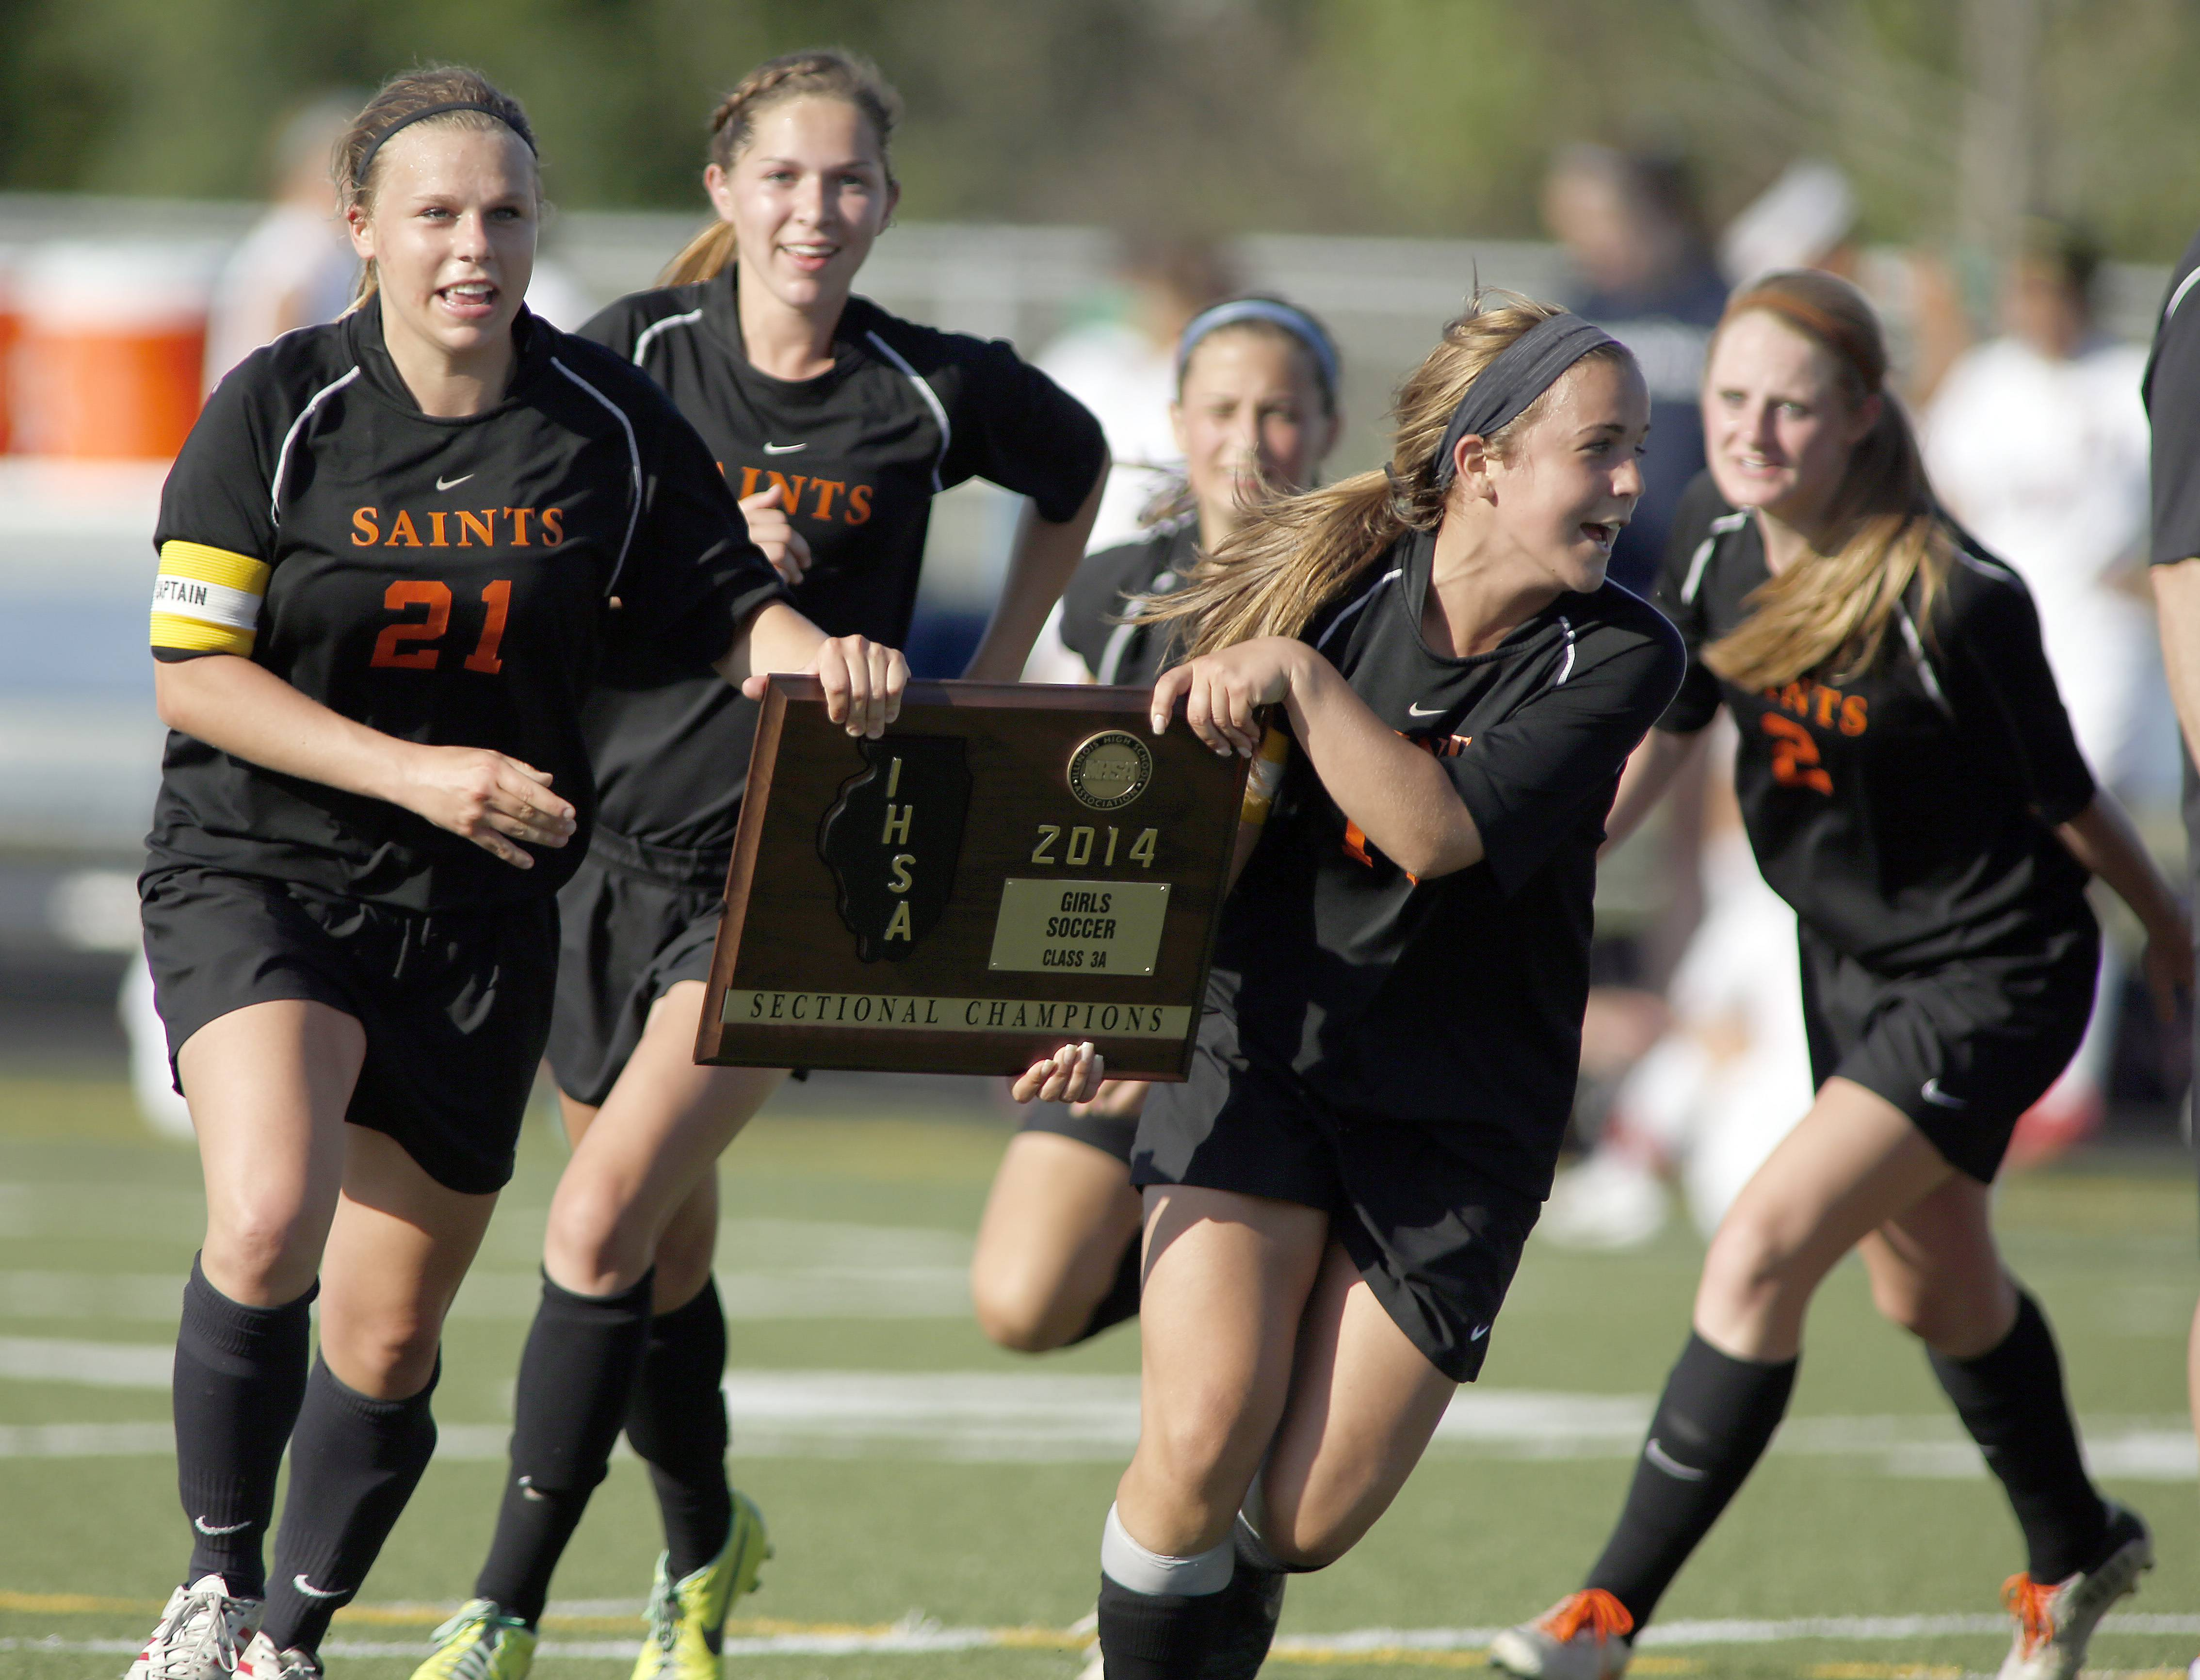 St. Charles East rushes to the sidelines with their plaque after beating Conant during sectional final play Friday in Hoffman Estates.